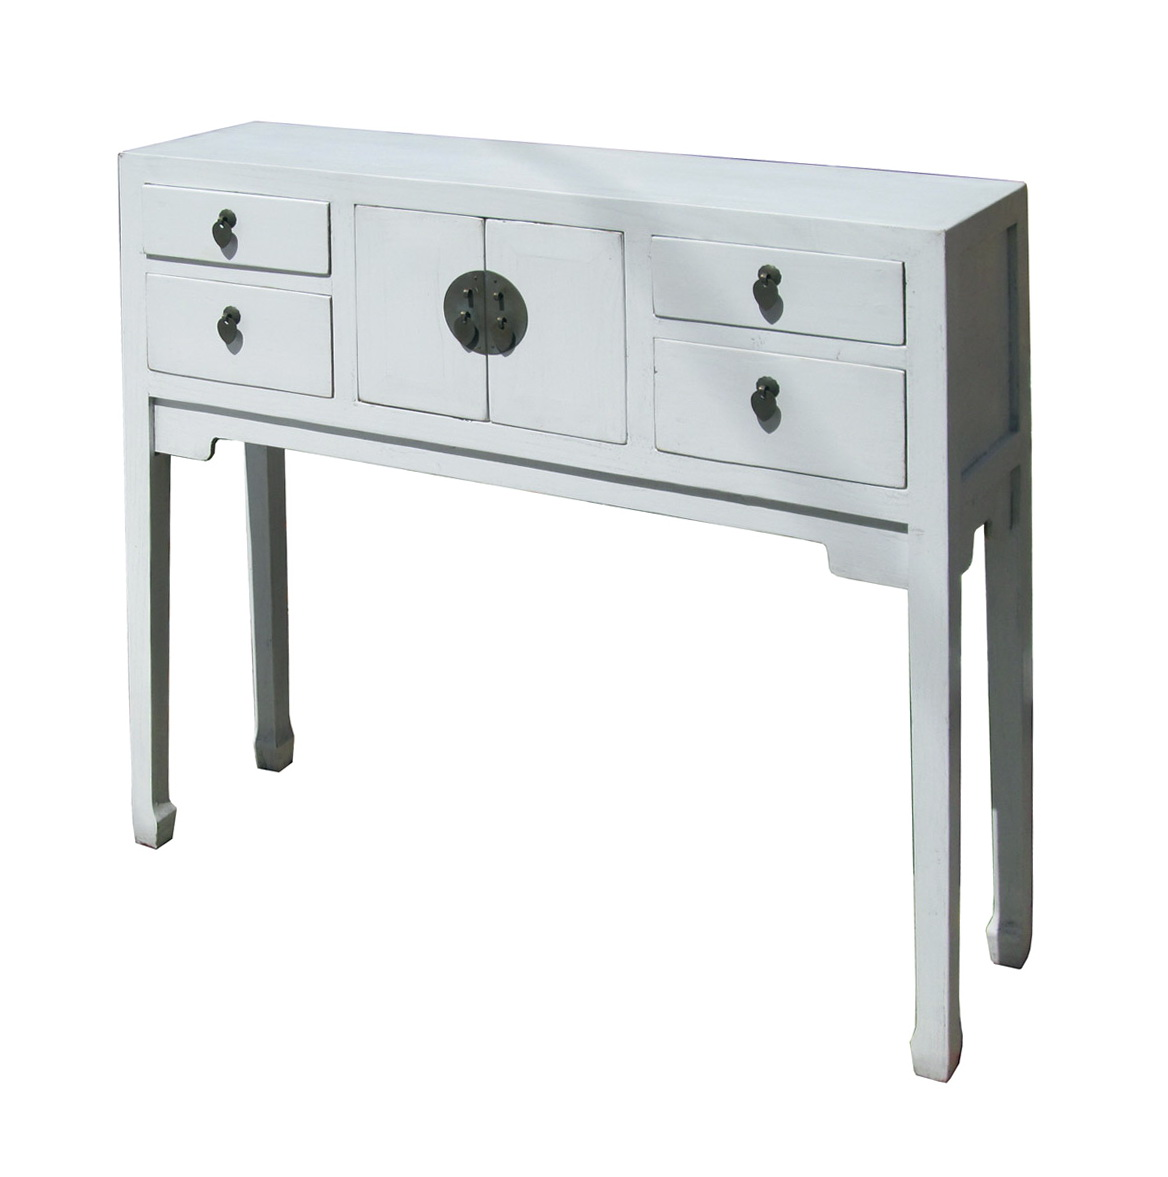 Narrow Console Table Australia Narrow Console Table White Home Design Ideas